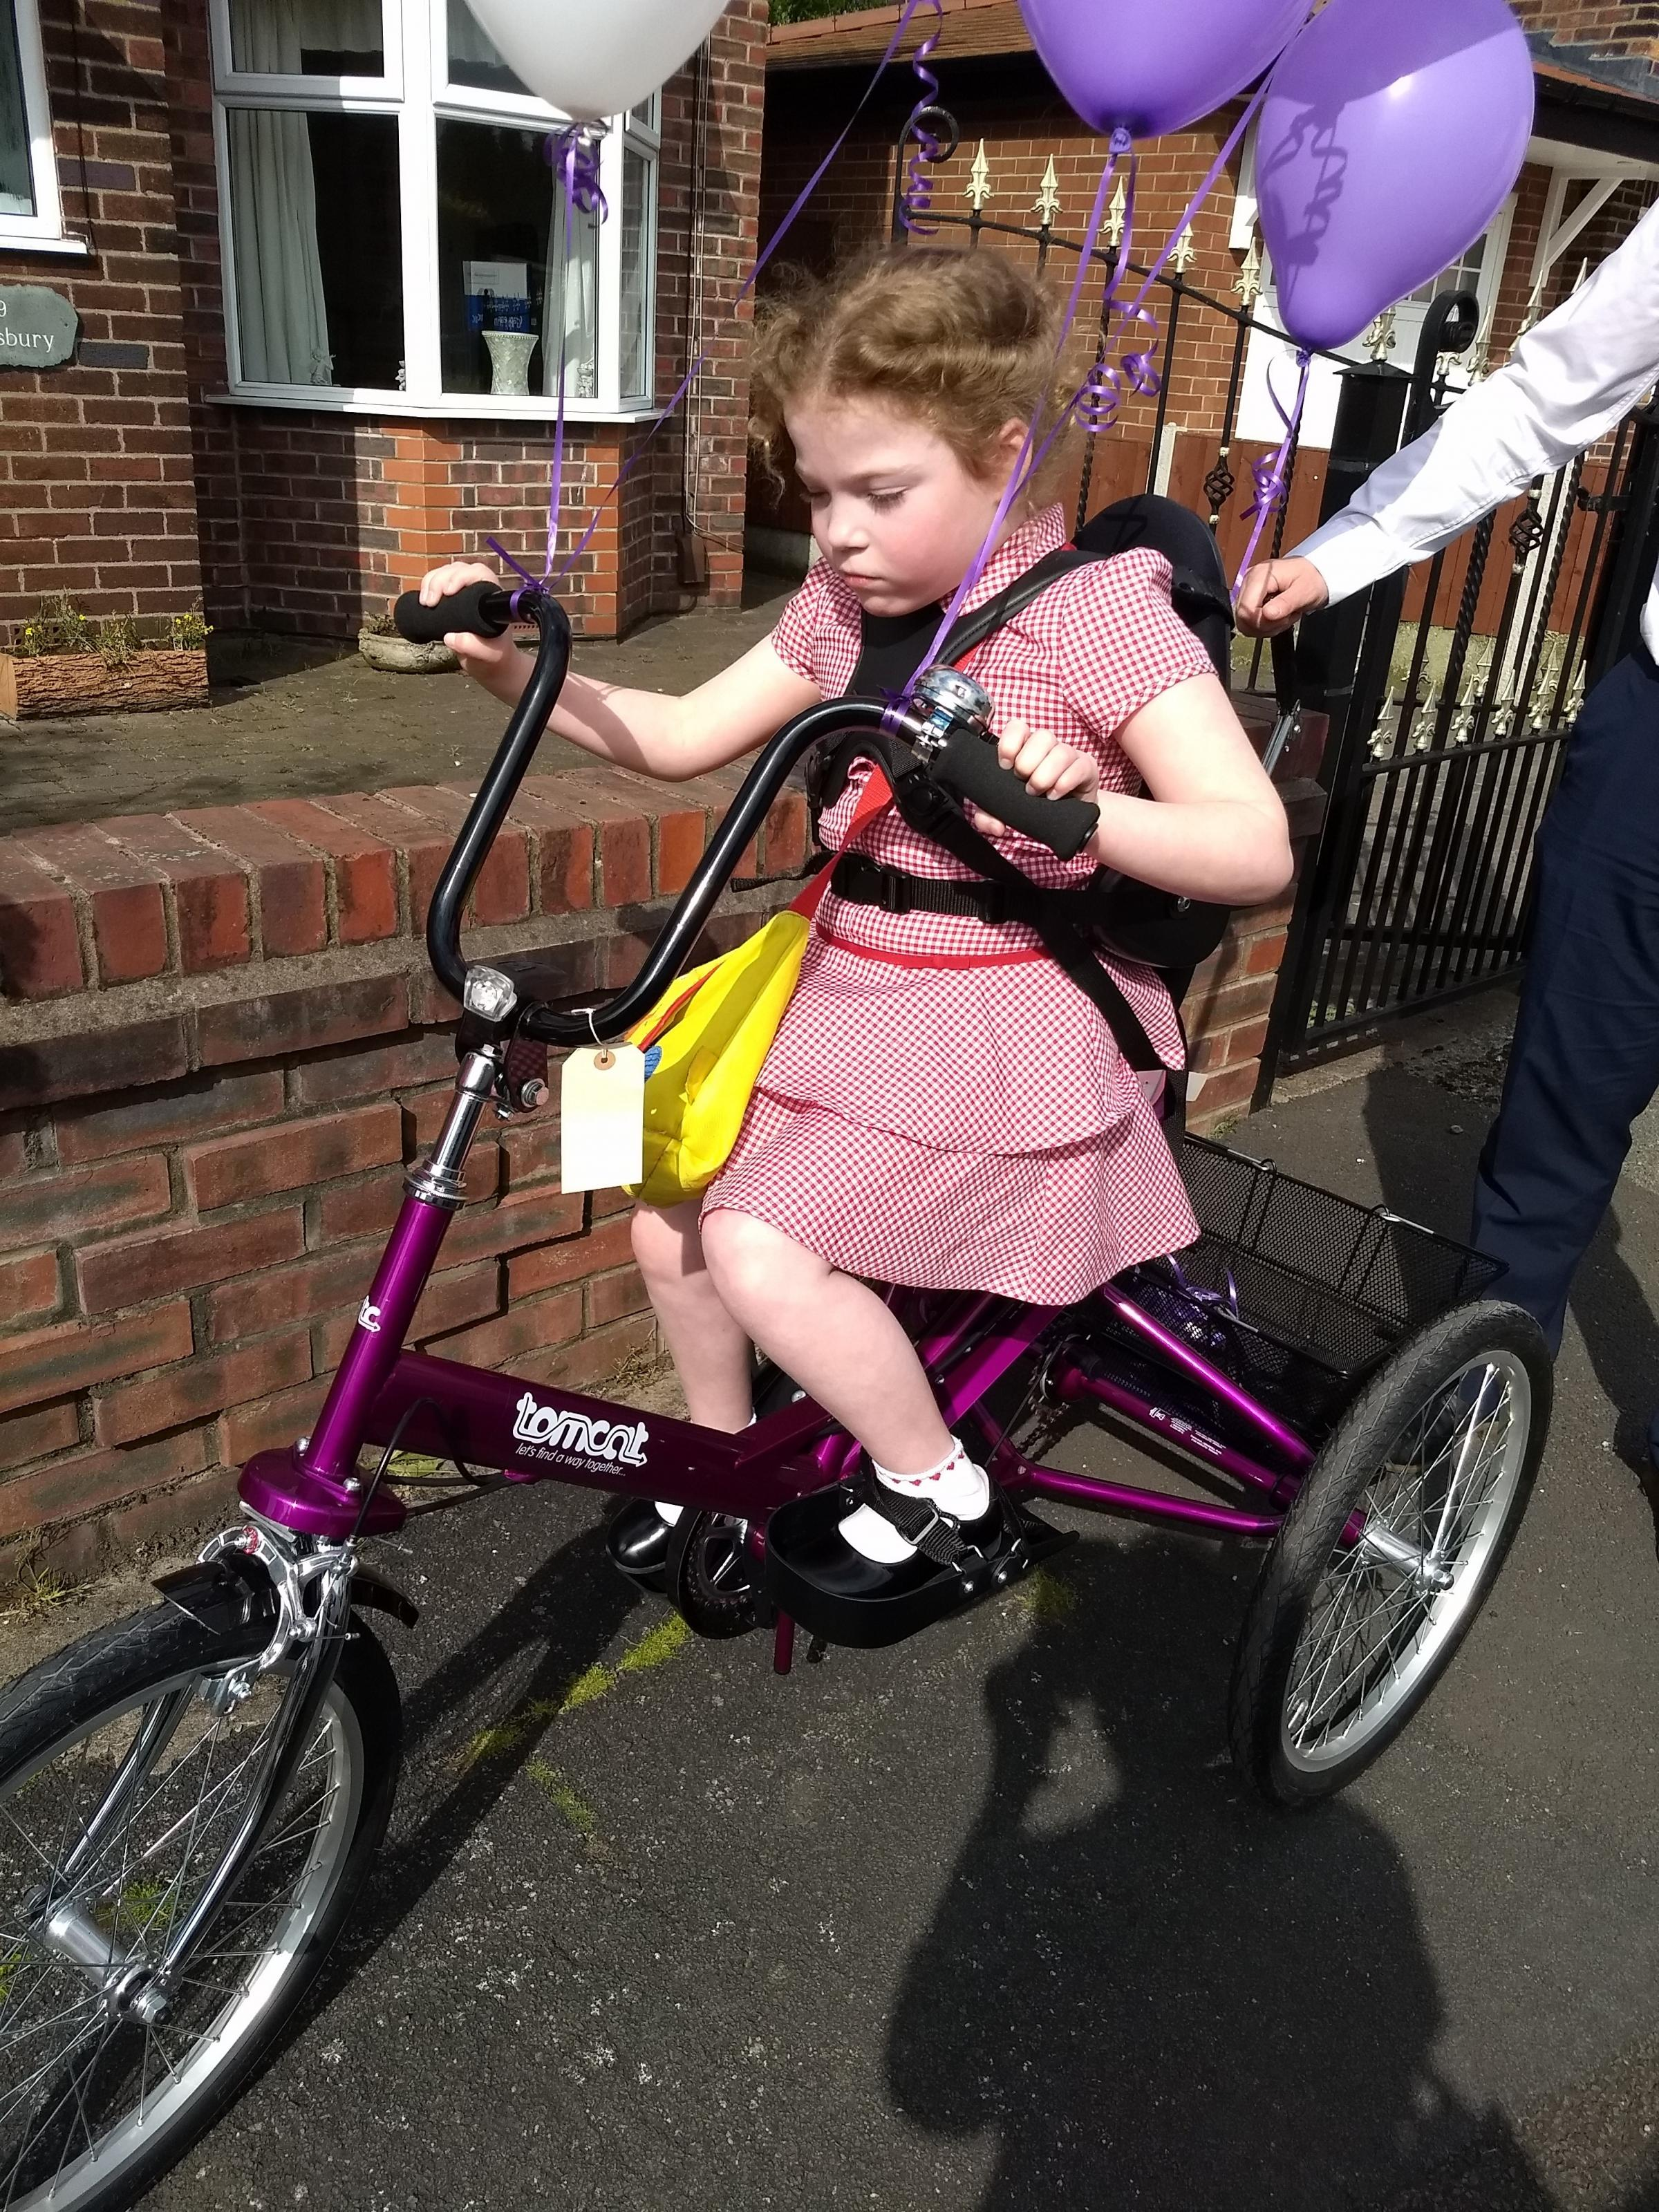 Seven-year-old Evie Chapman with her new Tomcat Fizz Trike, purchased with the help of the Steve Morgan Foundation.